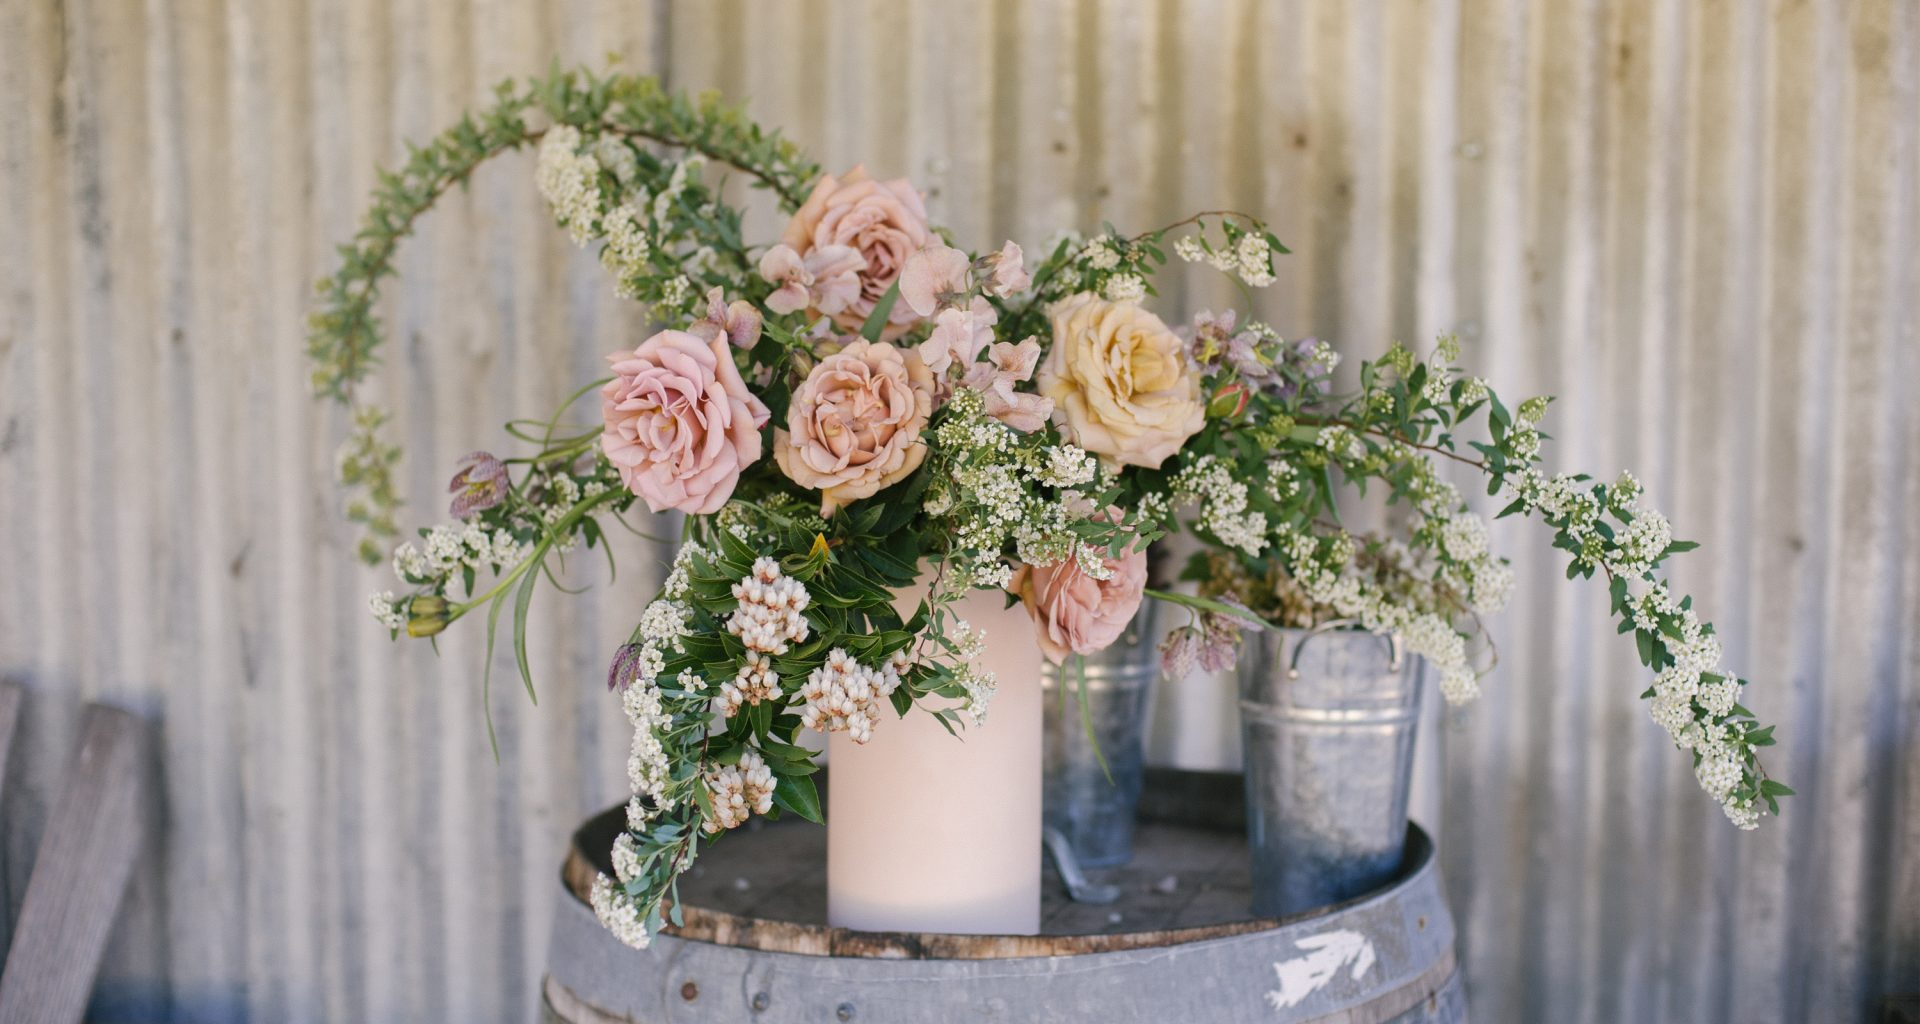 An Expert's Guide to Creating the Perfect Floral Arrangement